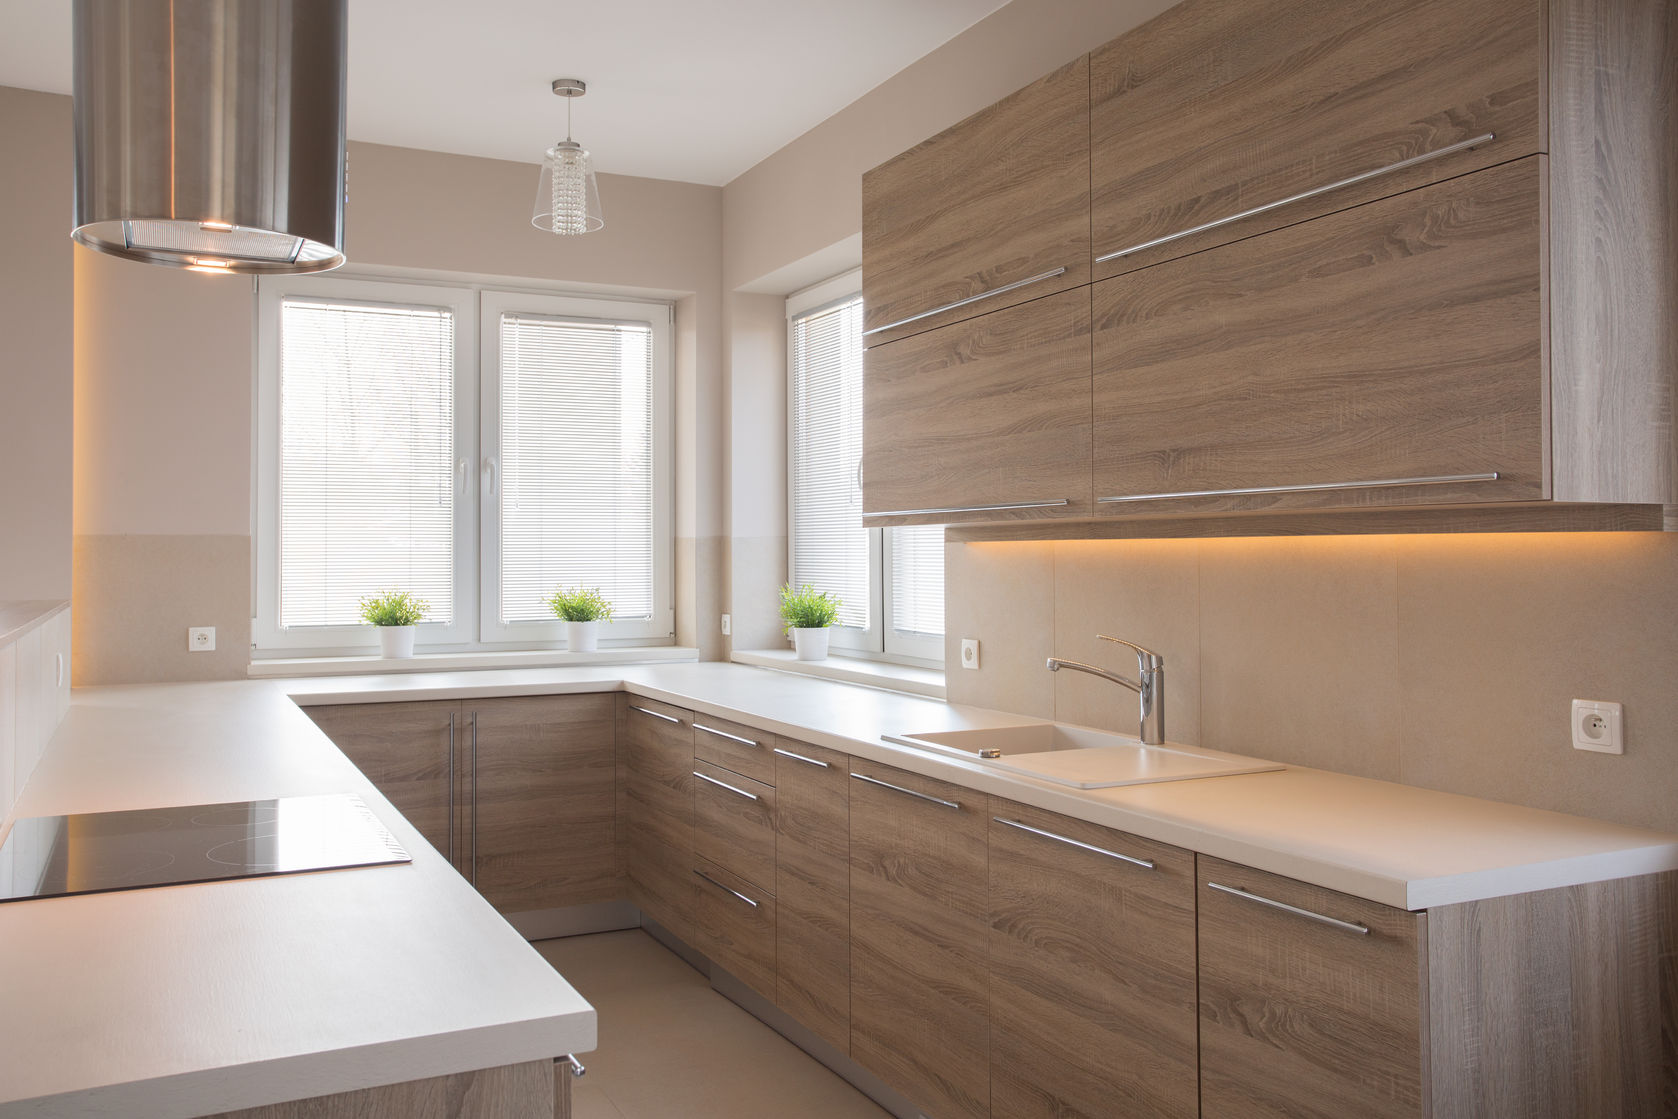 48766087 ml - Three Latest Kitchen Trends You Need to See